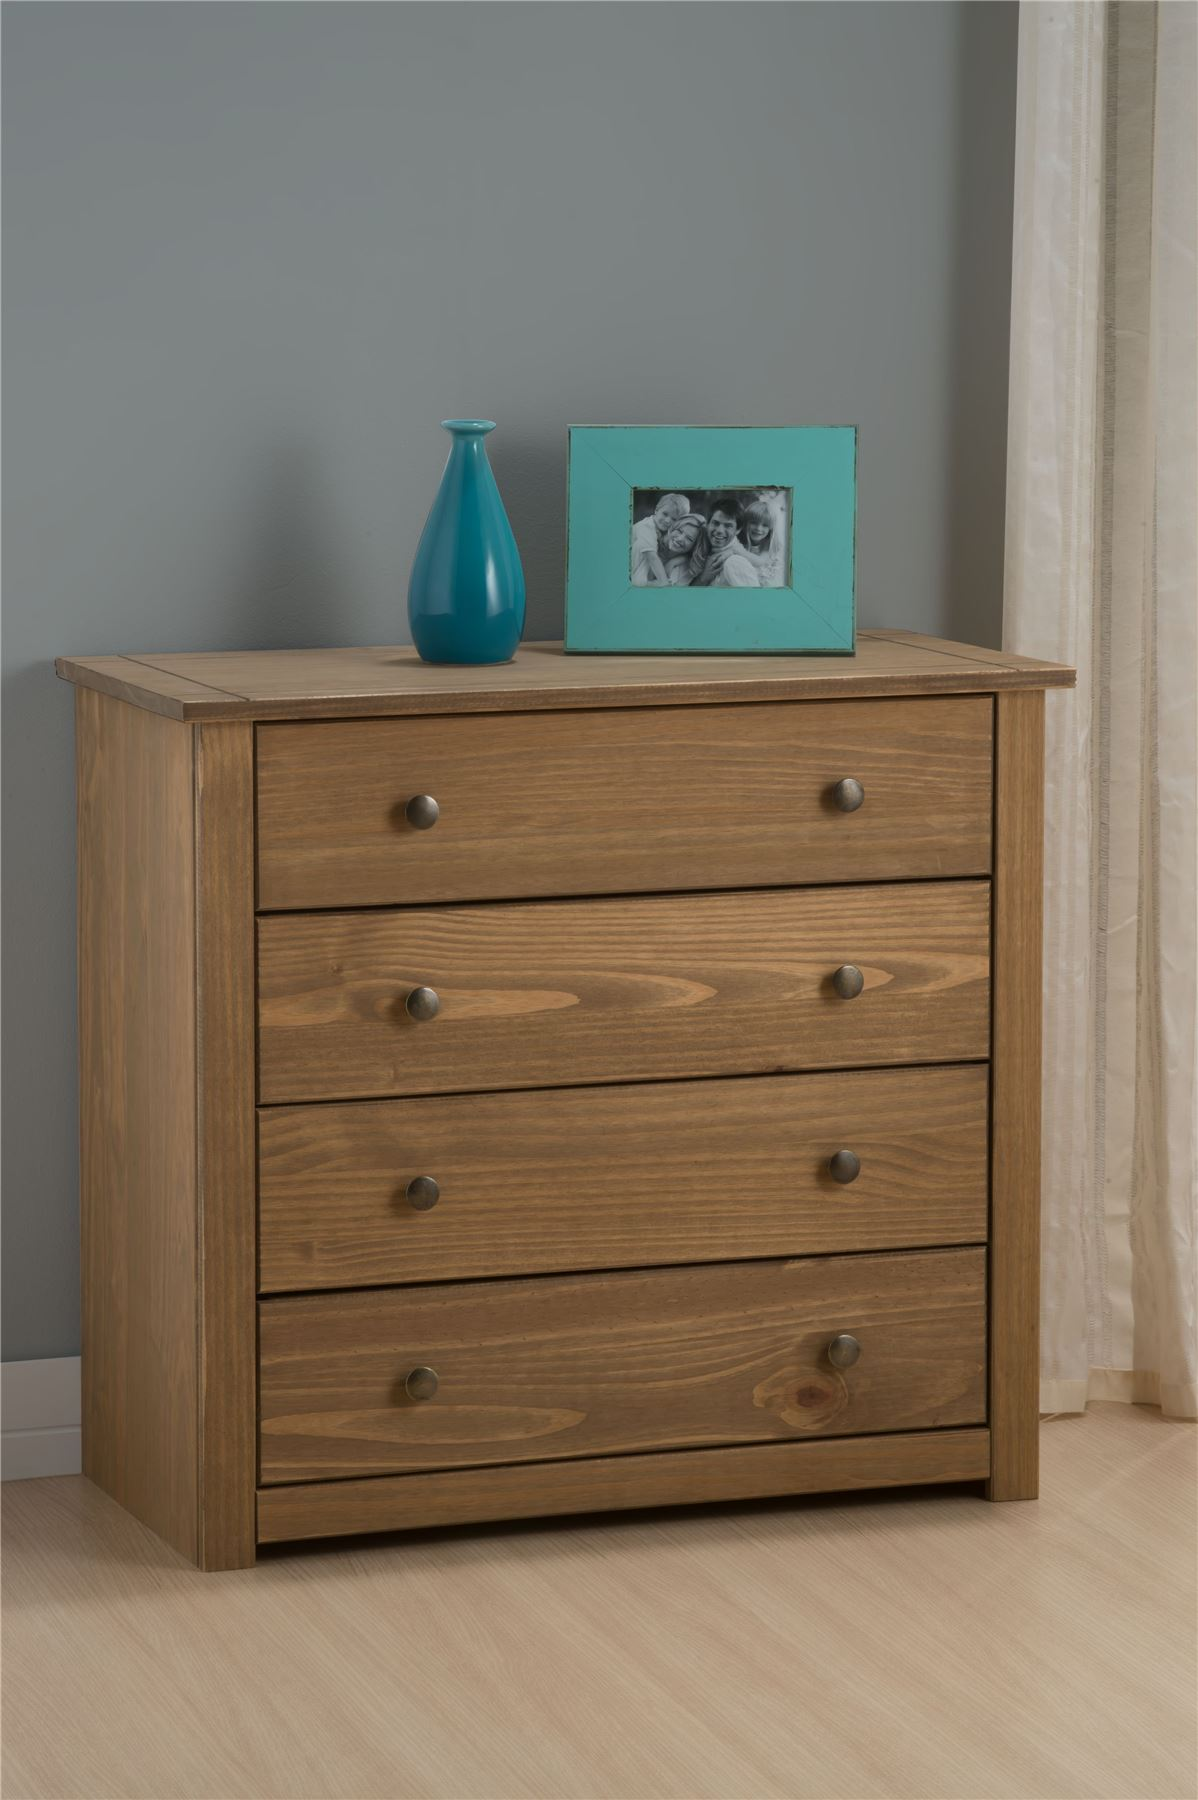 Birlea Santiago 4 Drawer Chest Drawers Corona Mexican Pine Solid Wood Furniture